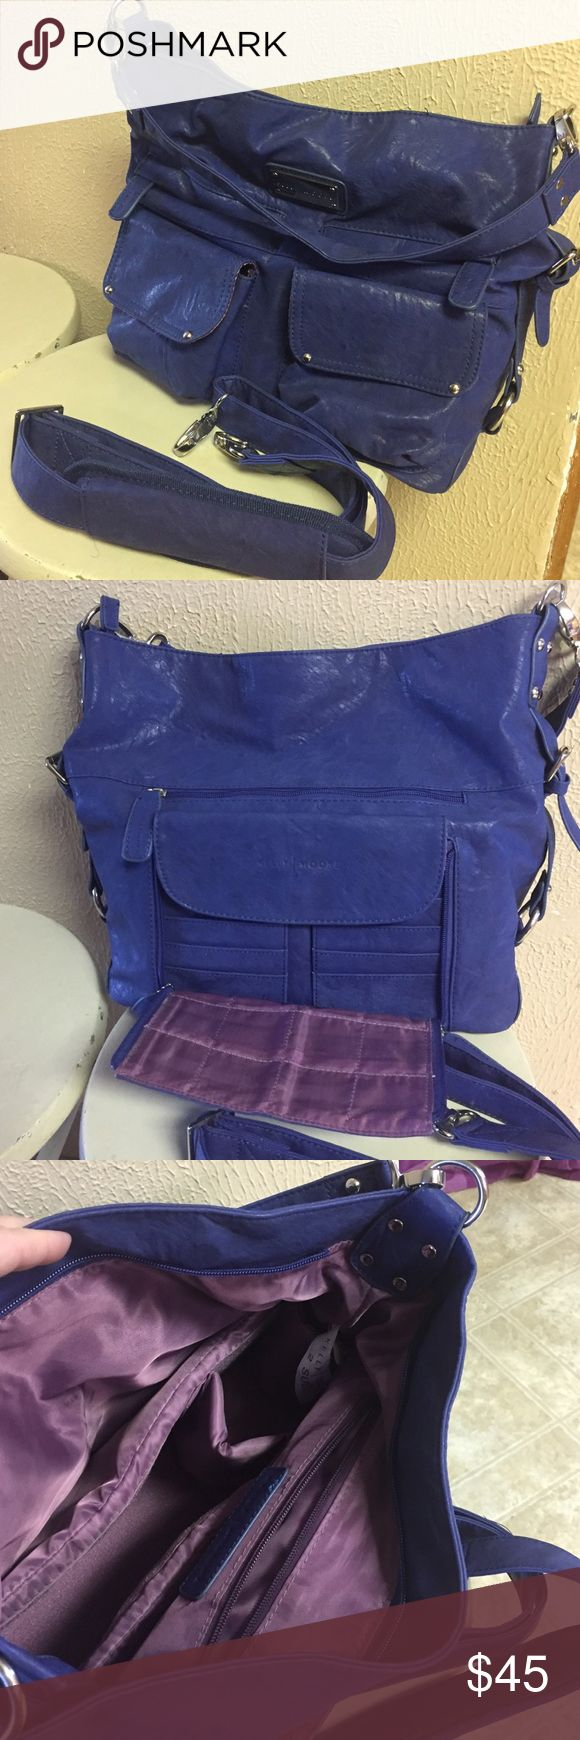 Kelly Moore Two Sues Bag Kelly Moore Two Sues bag in blue. Comes with a short shoulder strap & a long padded cross body strap. Two flap pockets & 2 zip pockets on one side & a large zip pocket  and Posey pocket on the other side. Has a removable padded basket with Velcro dividers to protect camera gear. 12(w) 13(h) 5(d). Very user friendly Bag. Gently used & still has a long life left. Kelly Moore Bags Shoulder Bags